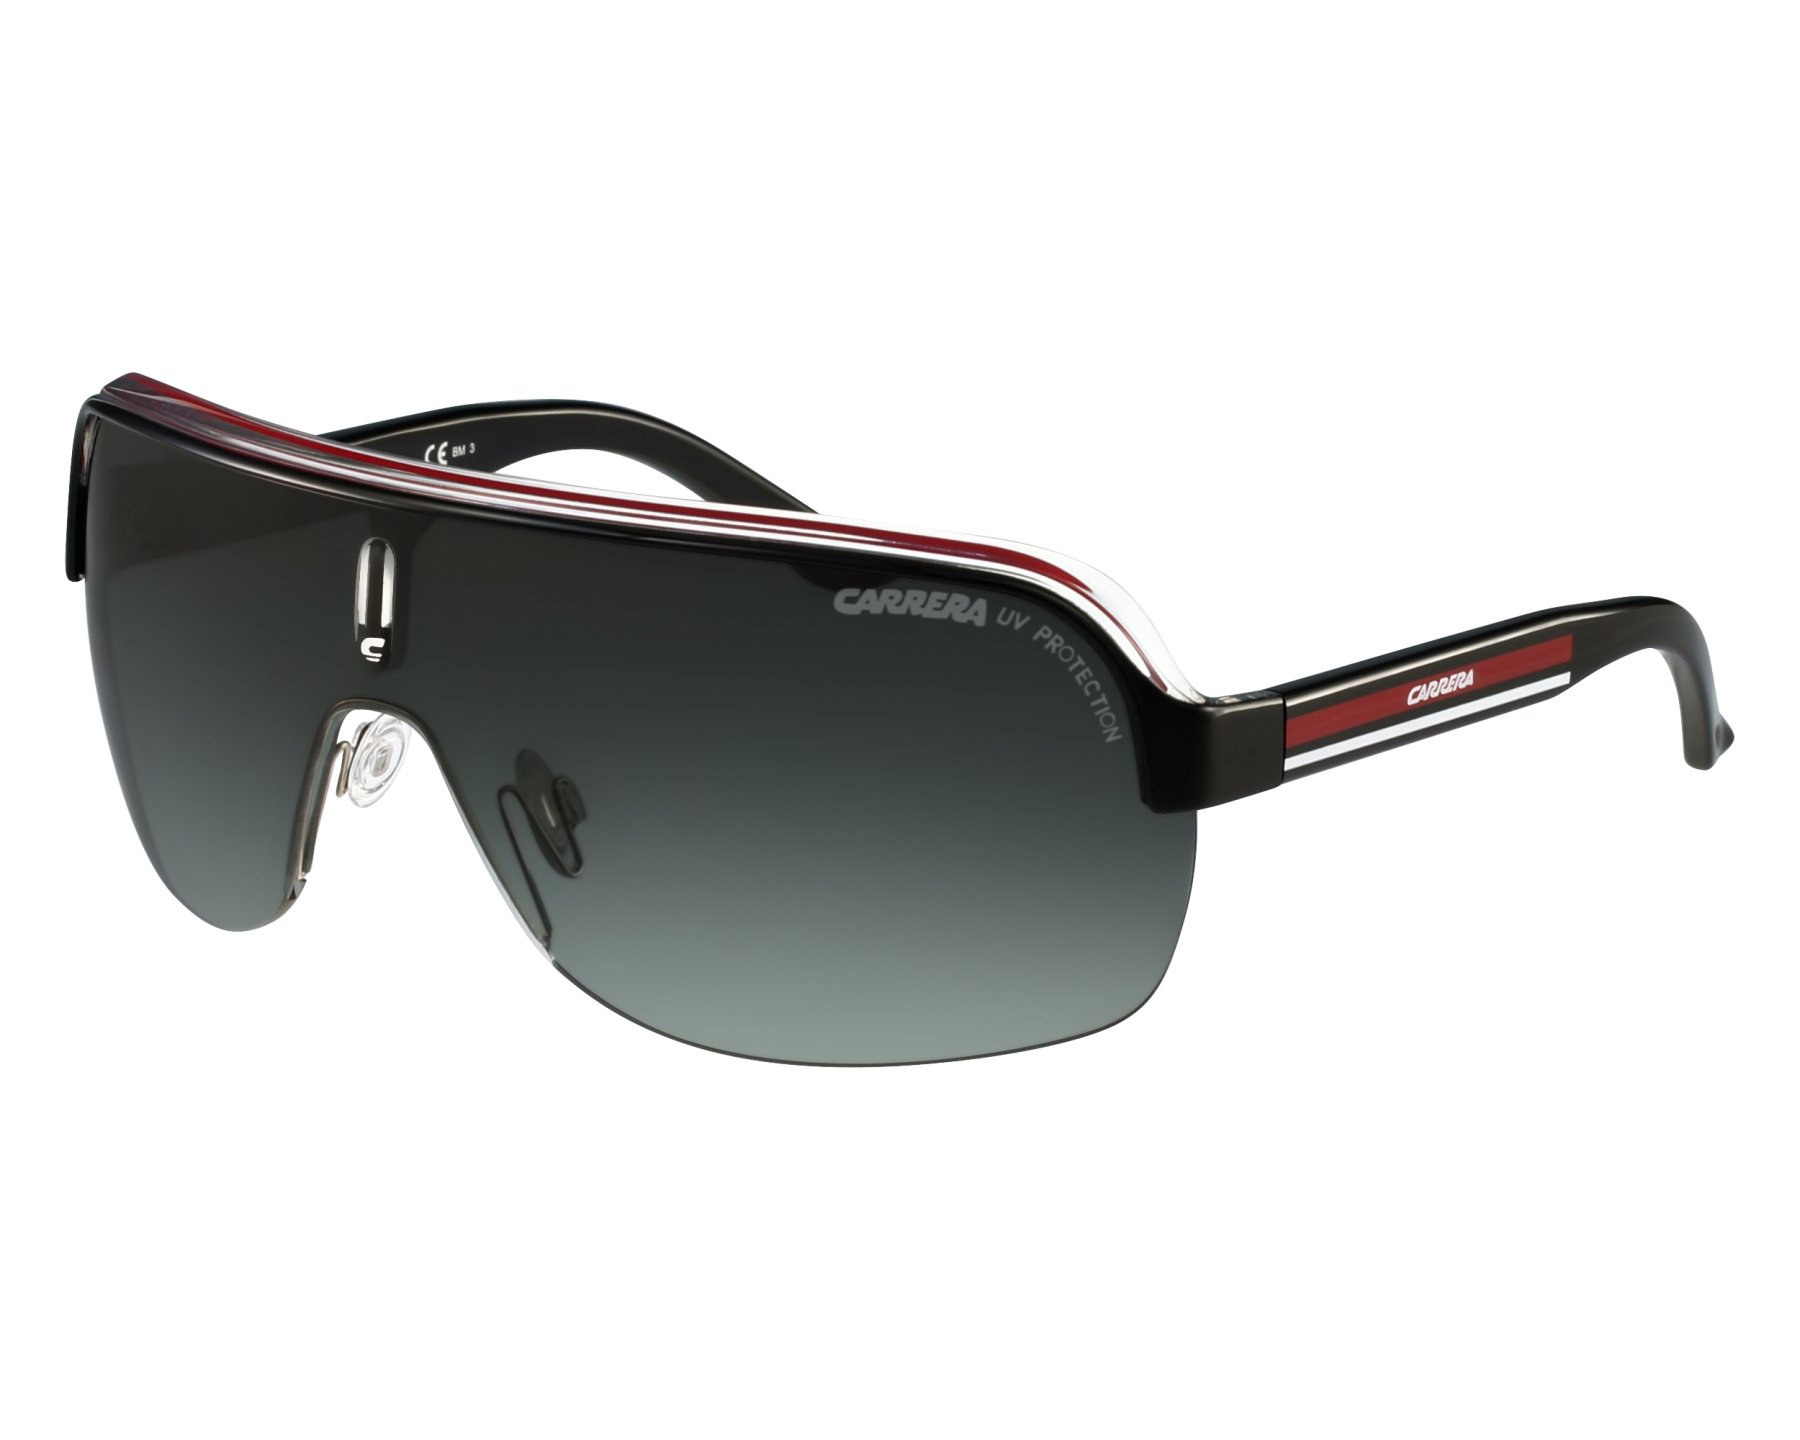 ef0853f871801 Sunglasses Carrera Topcar-1 KB0 PT - Red Crystal front view